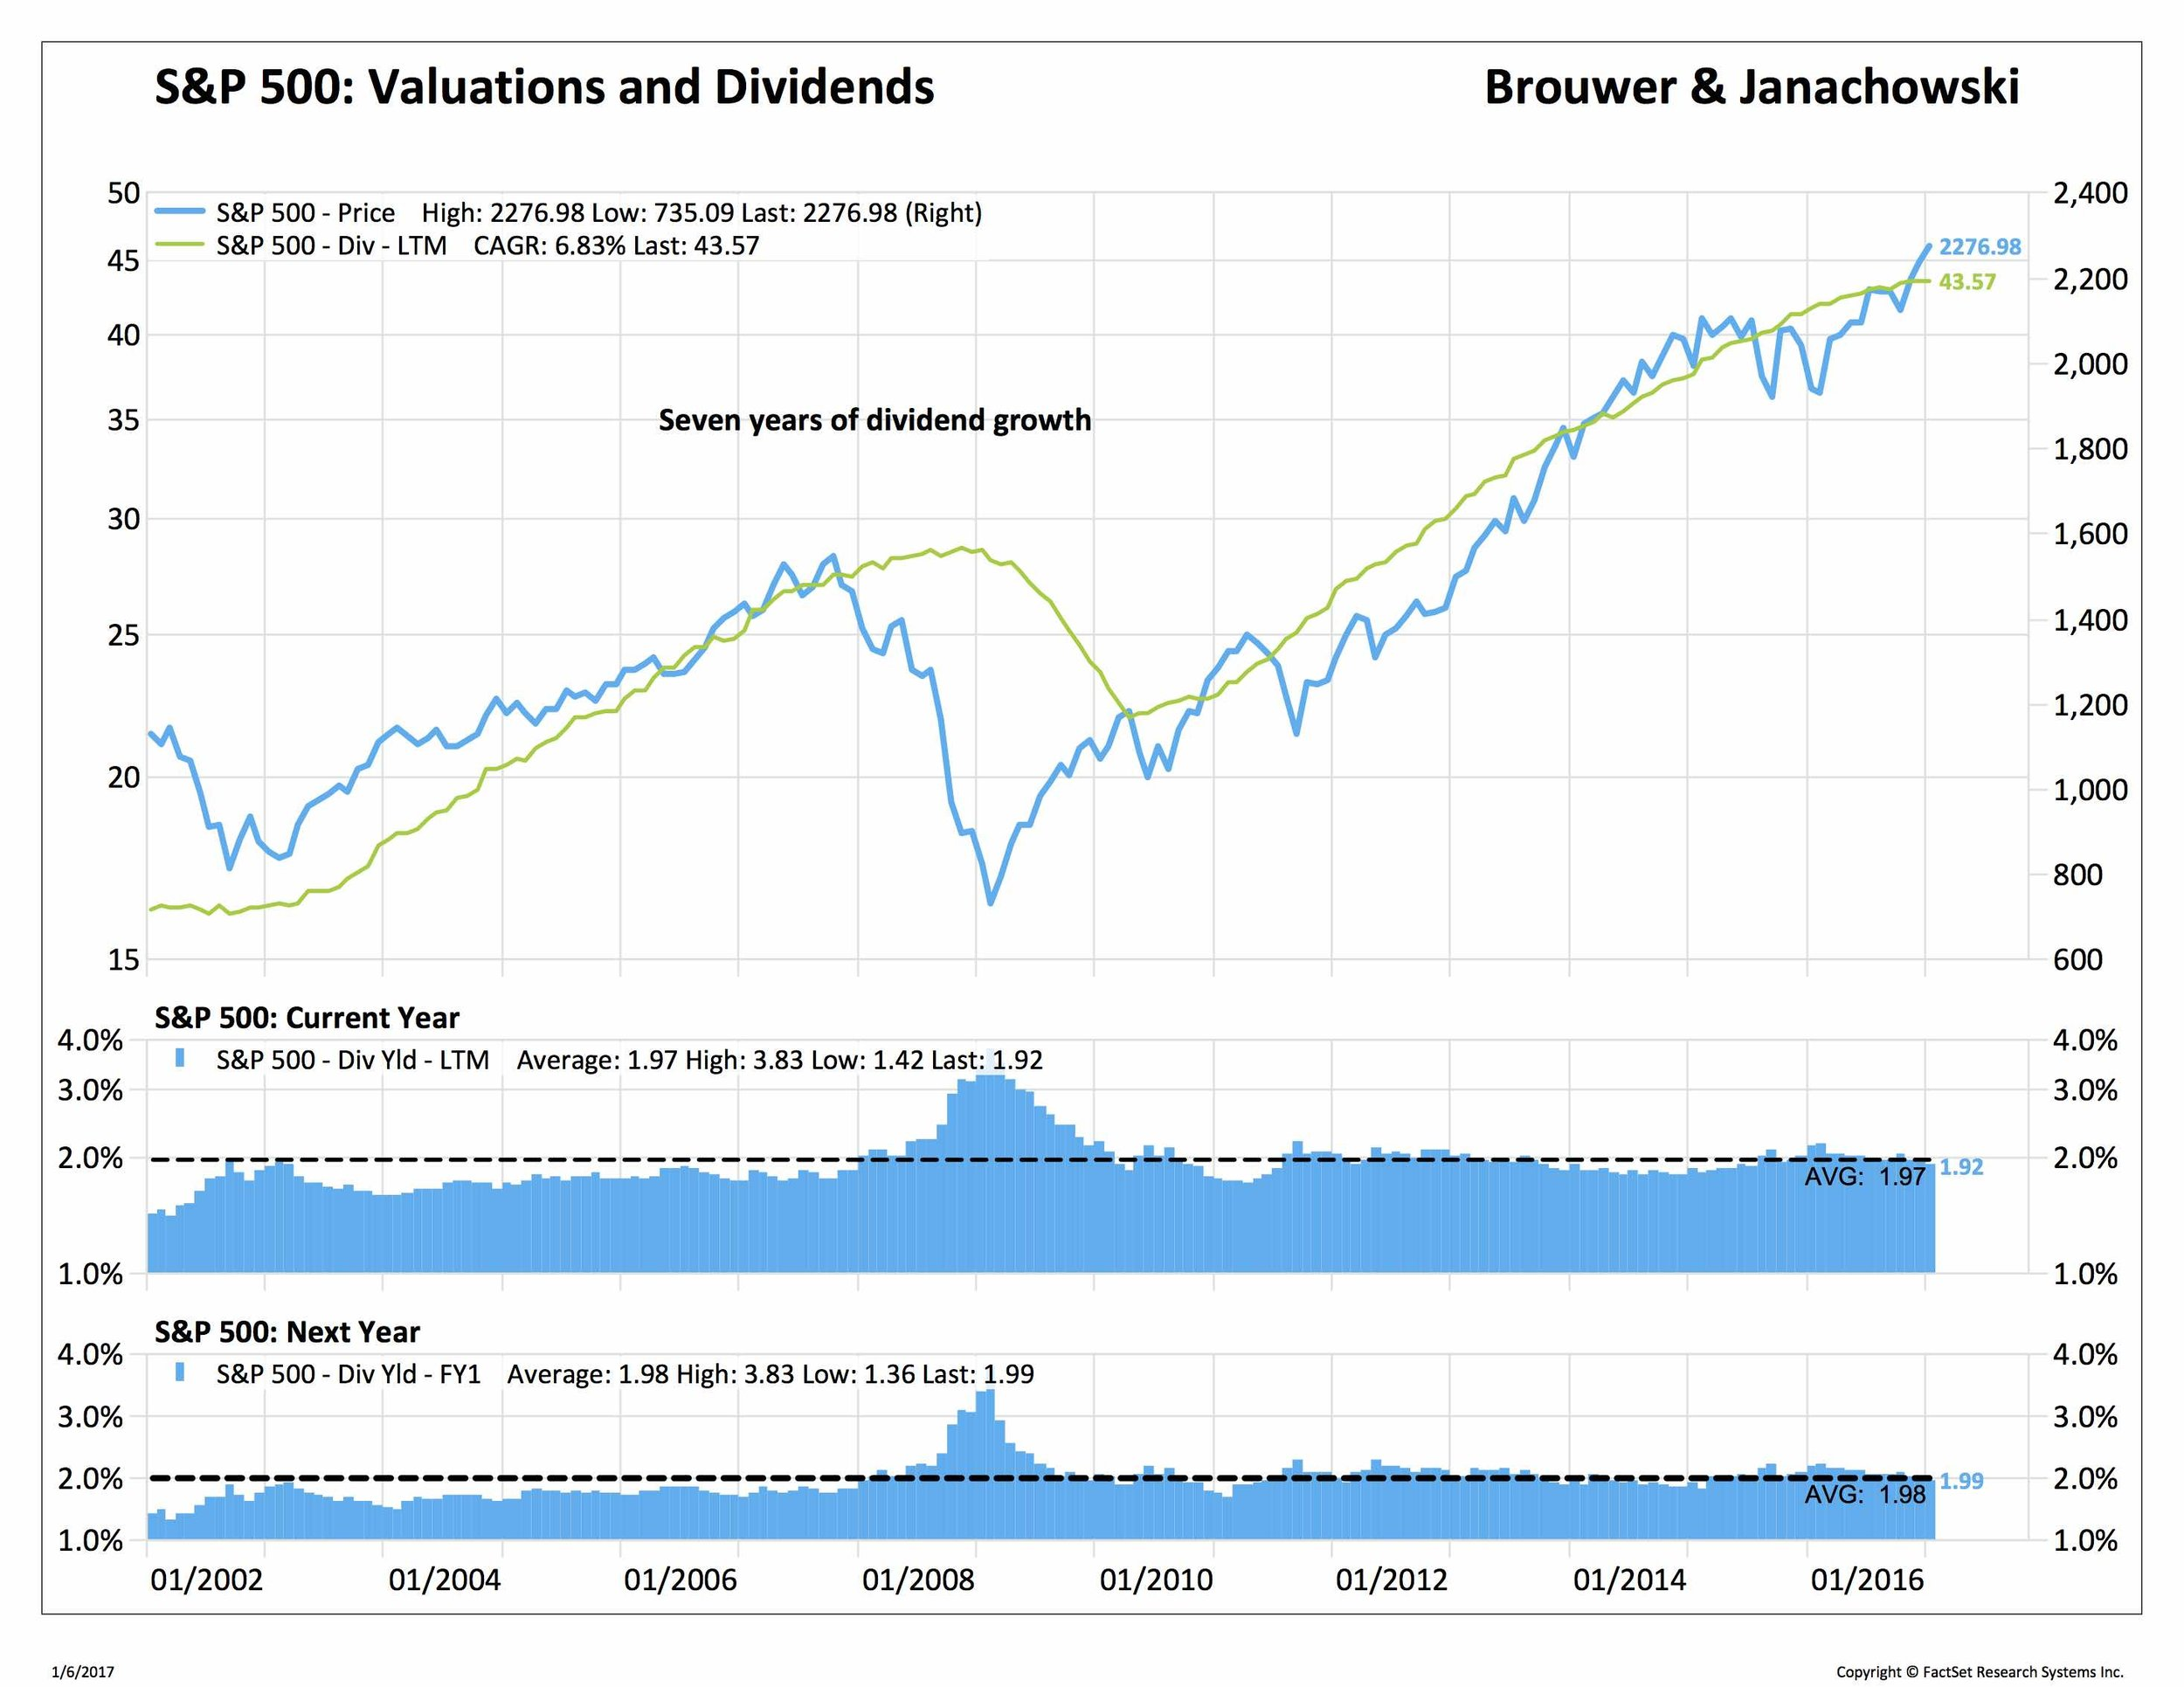 Brouwer and Janachowski - Valuations and Dividends